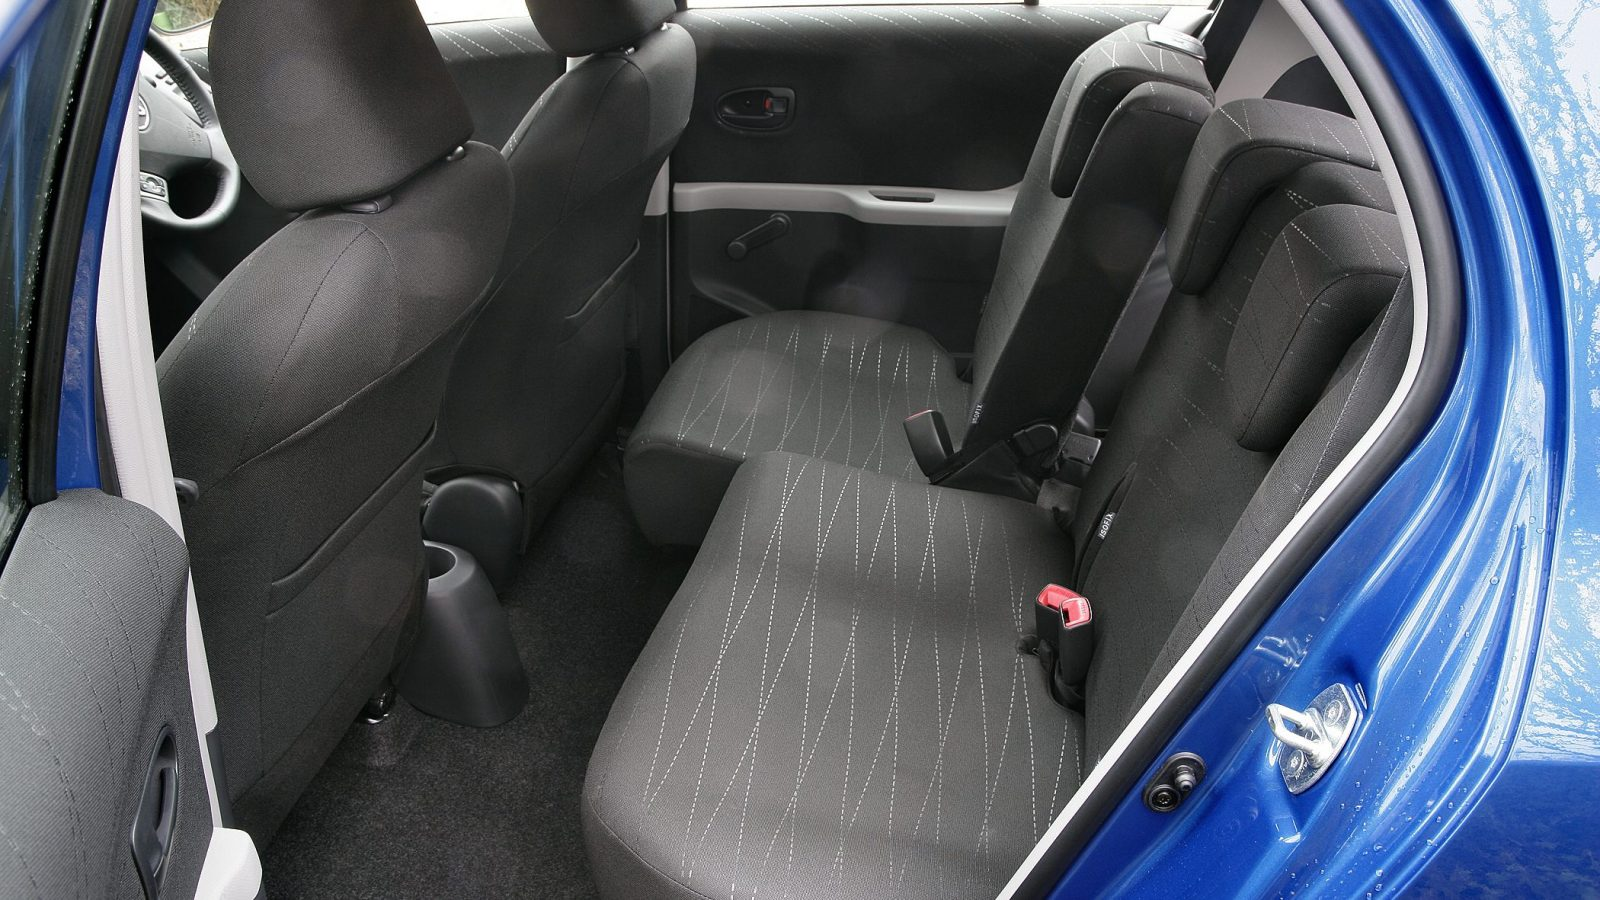 Sliding rear seats in second-generation Toyota Yaris